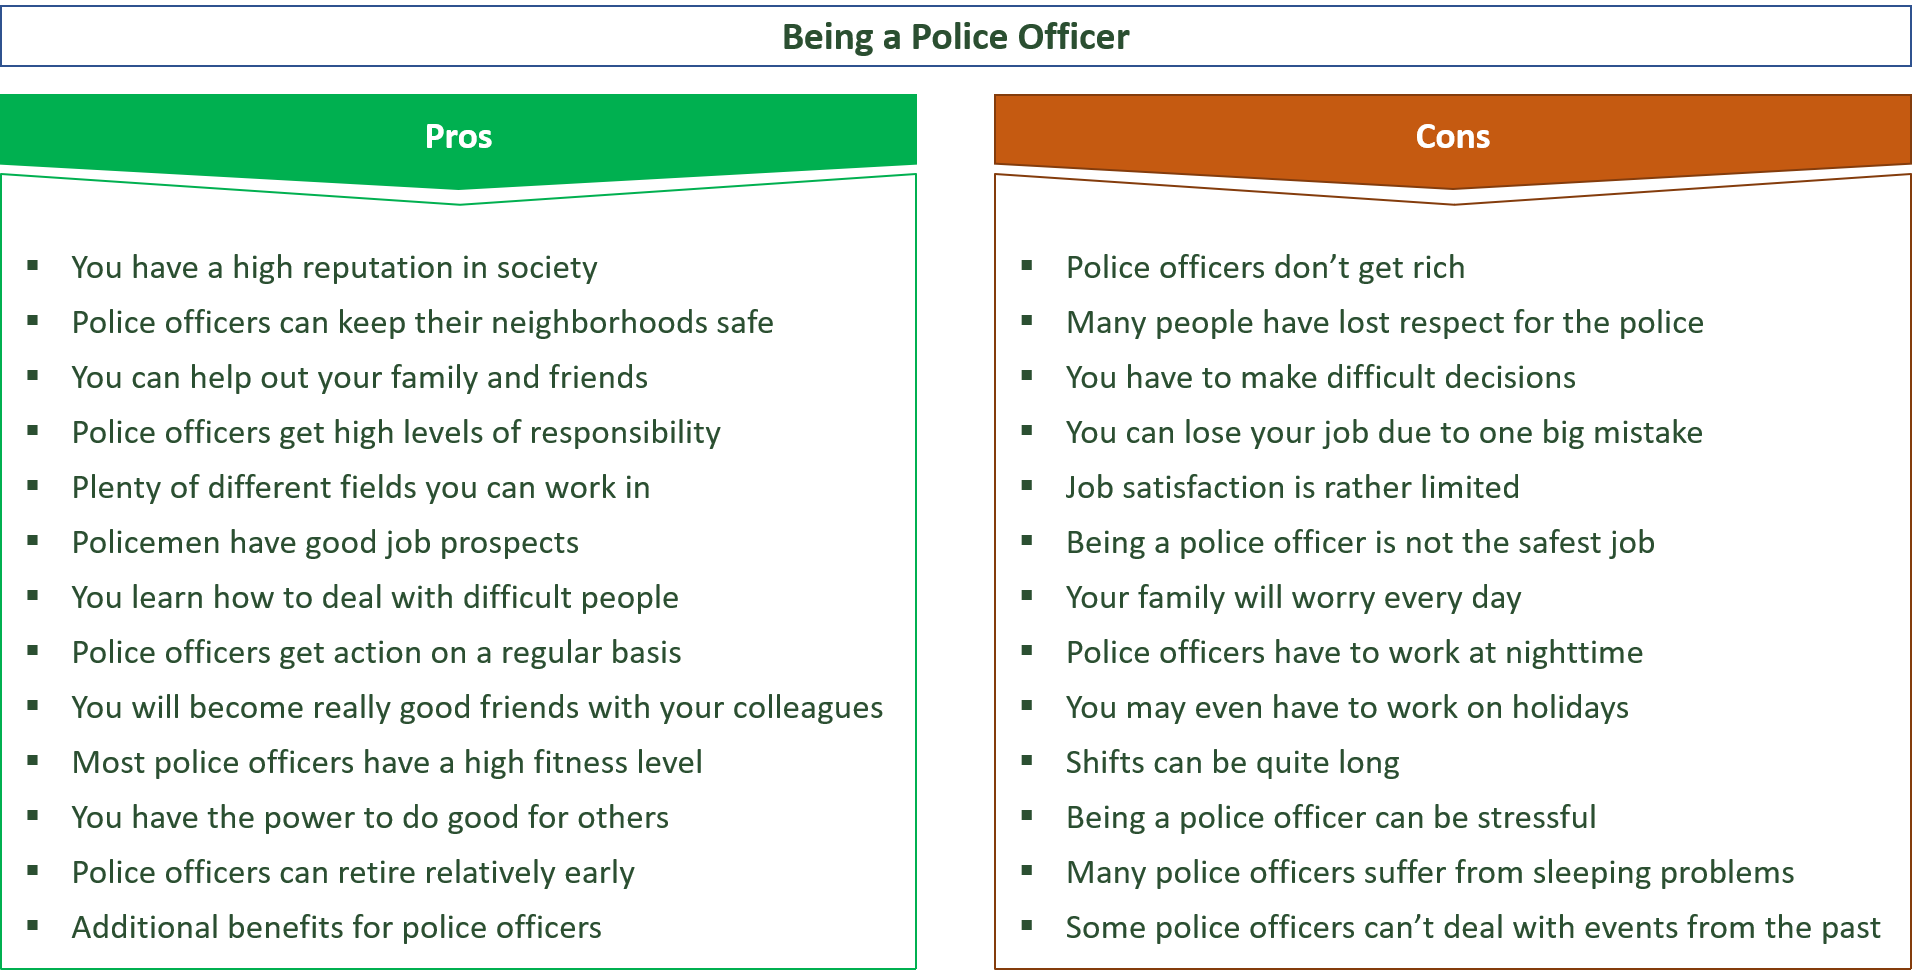 advantages and disadvantages of being a police officer